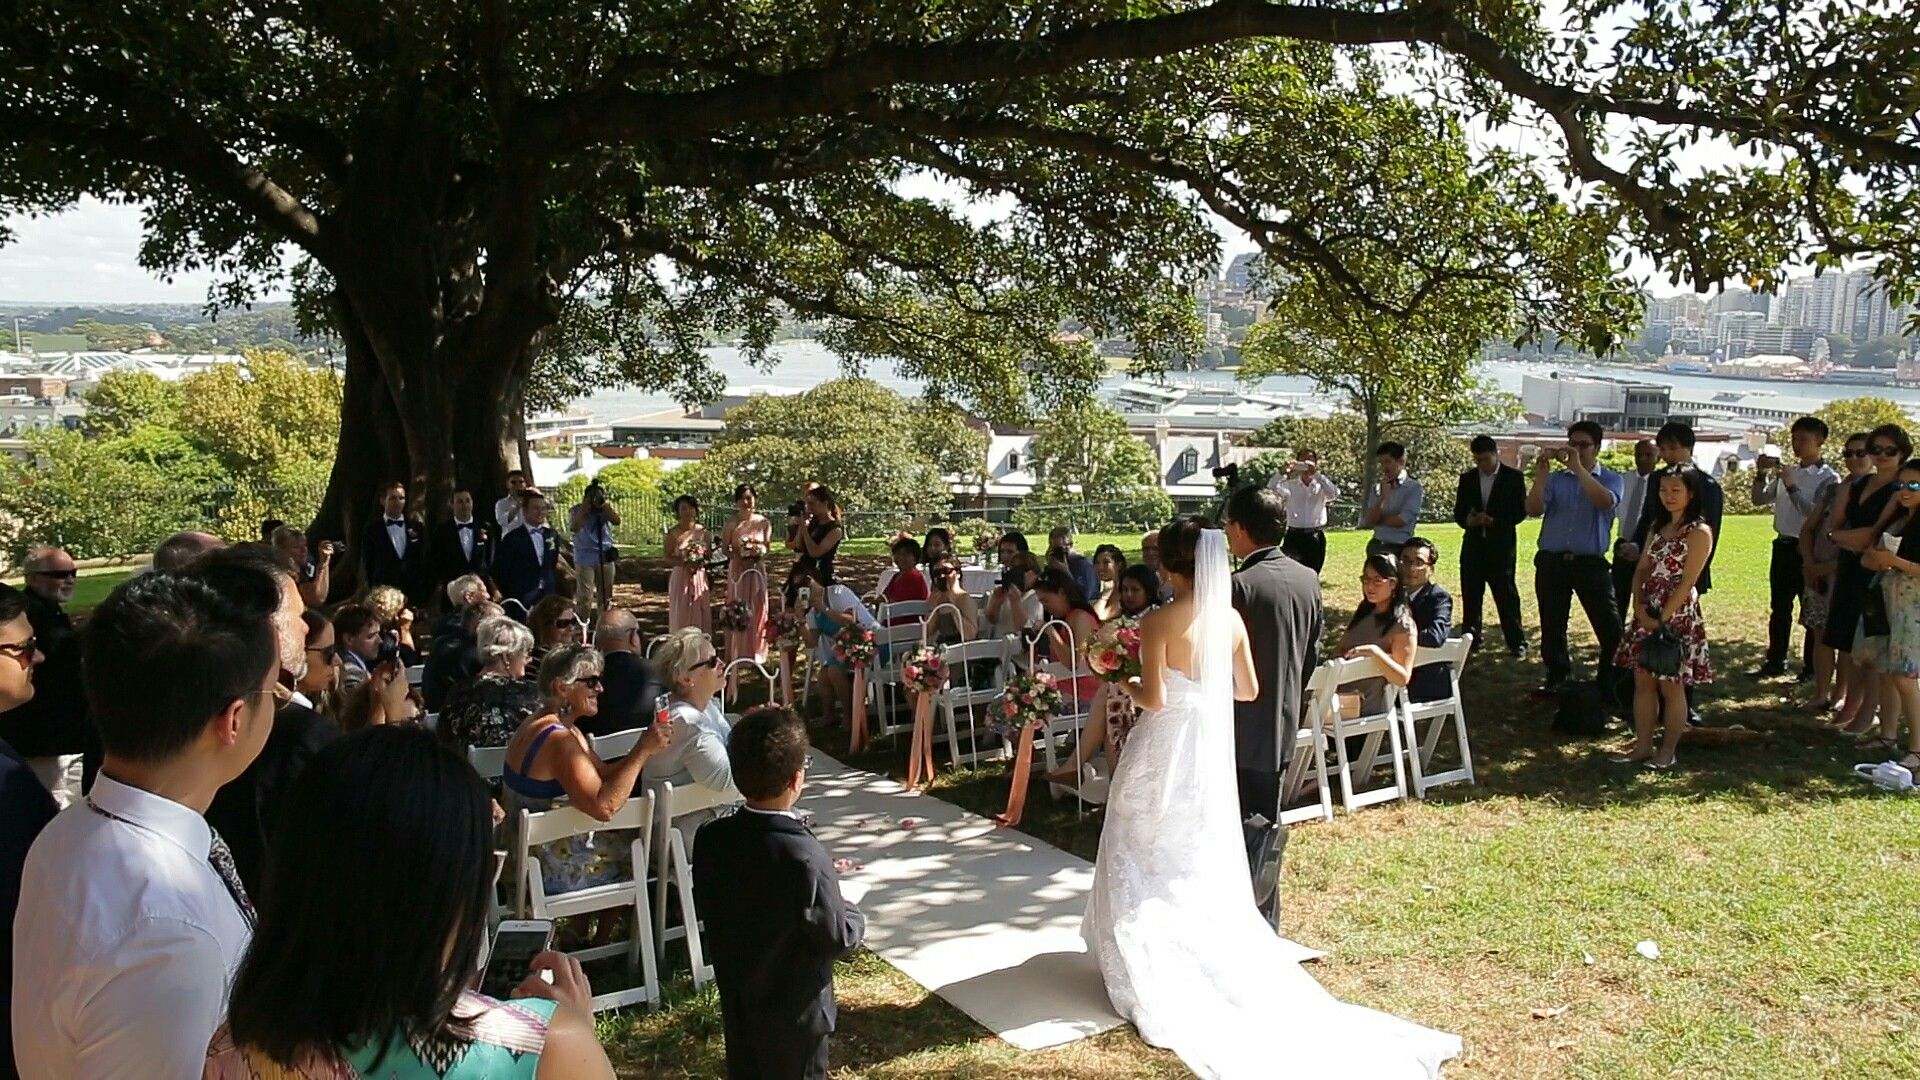 Observatory Hill Wedding Ceremony A Lovely Bride With Gorgeous Gown Walking Down The